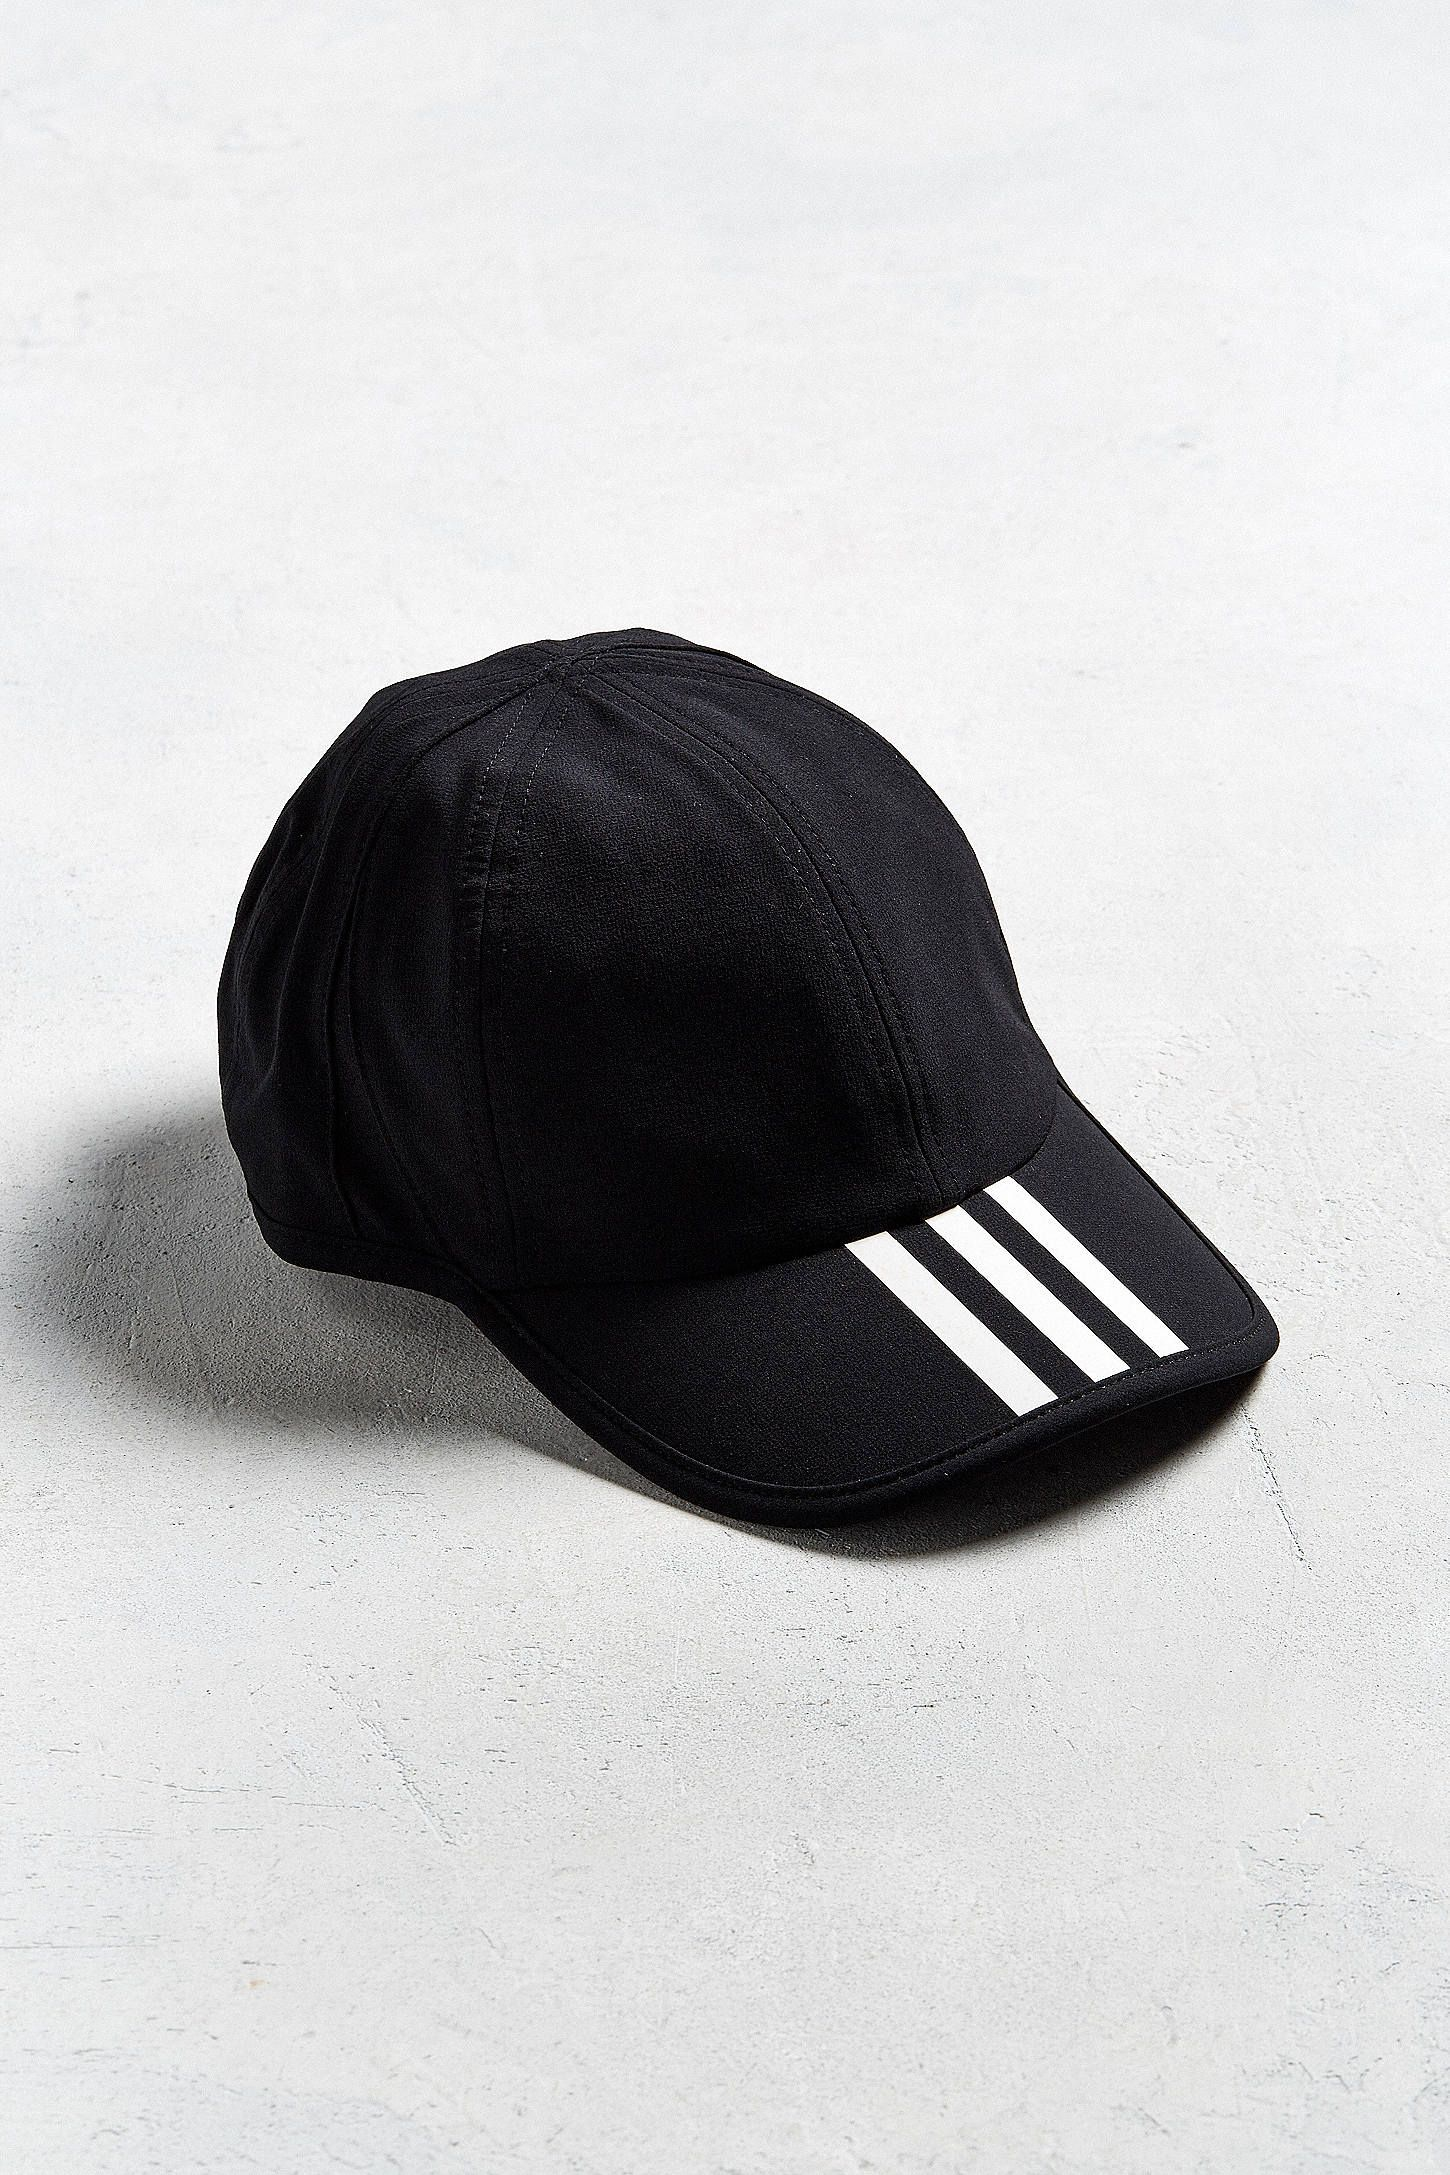 Shop adidas Originals 3-Stripes Trainer Baseball Hat at Urban Outfitters  today. We carry all the latest styles 7551d1f87bb